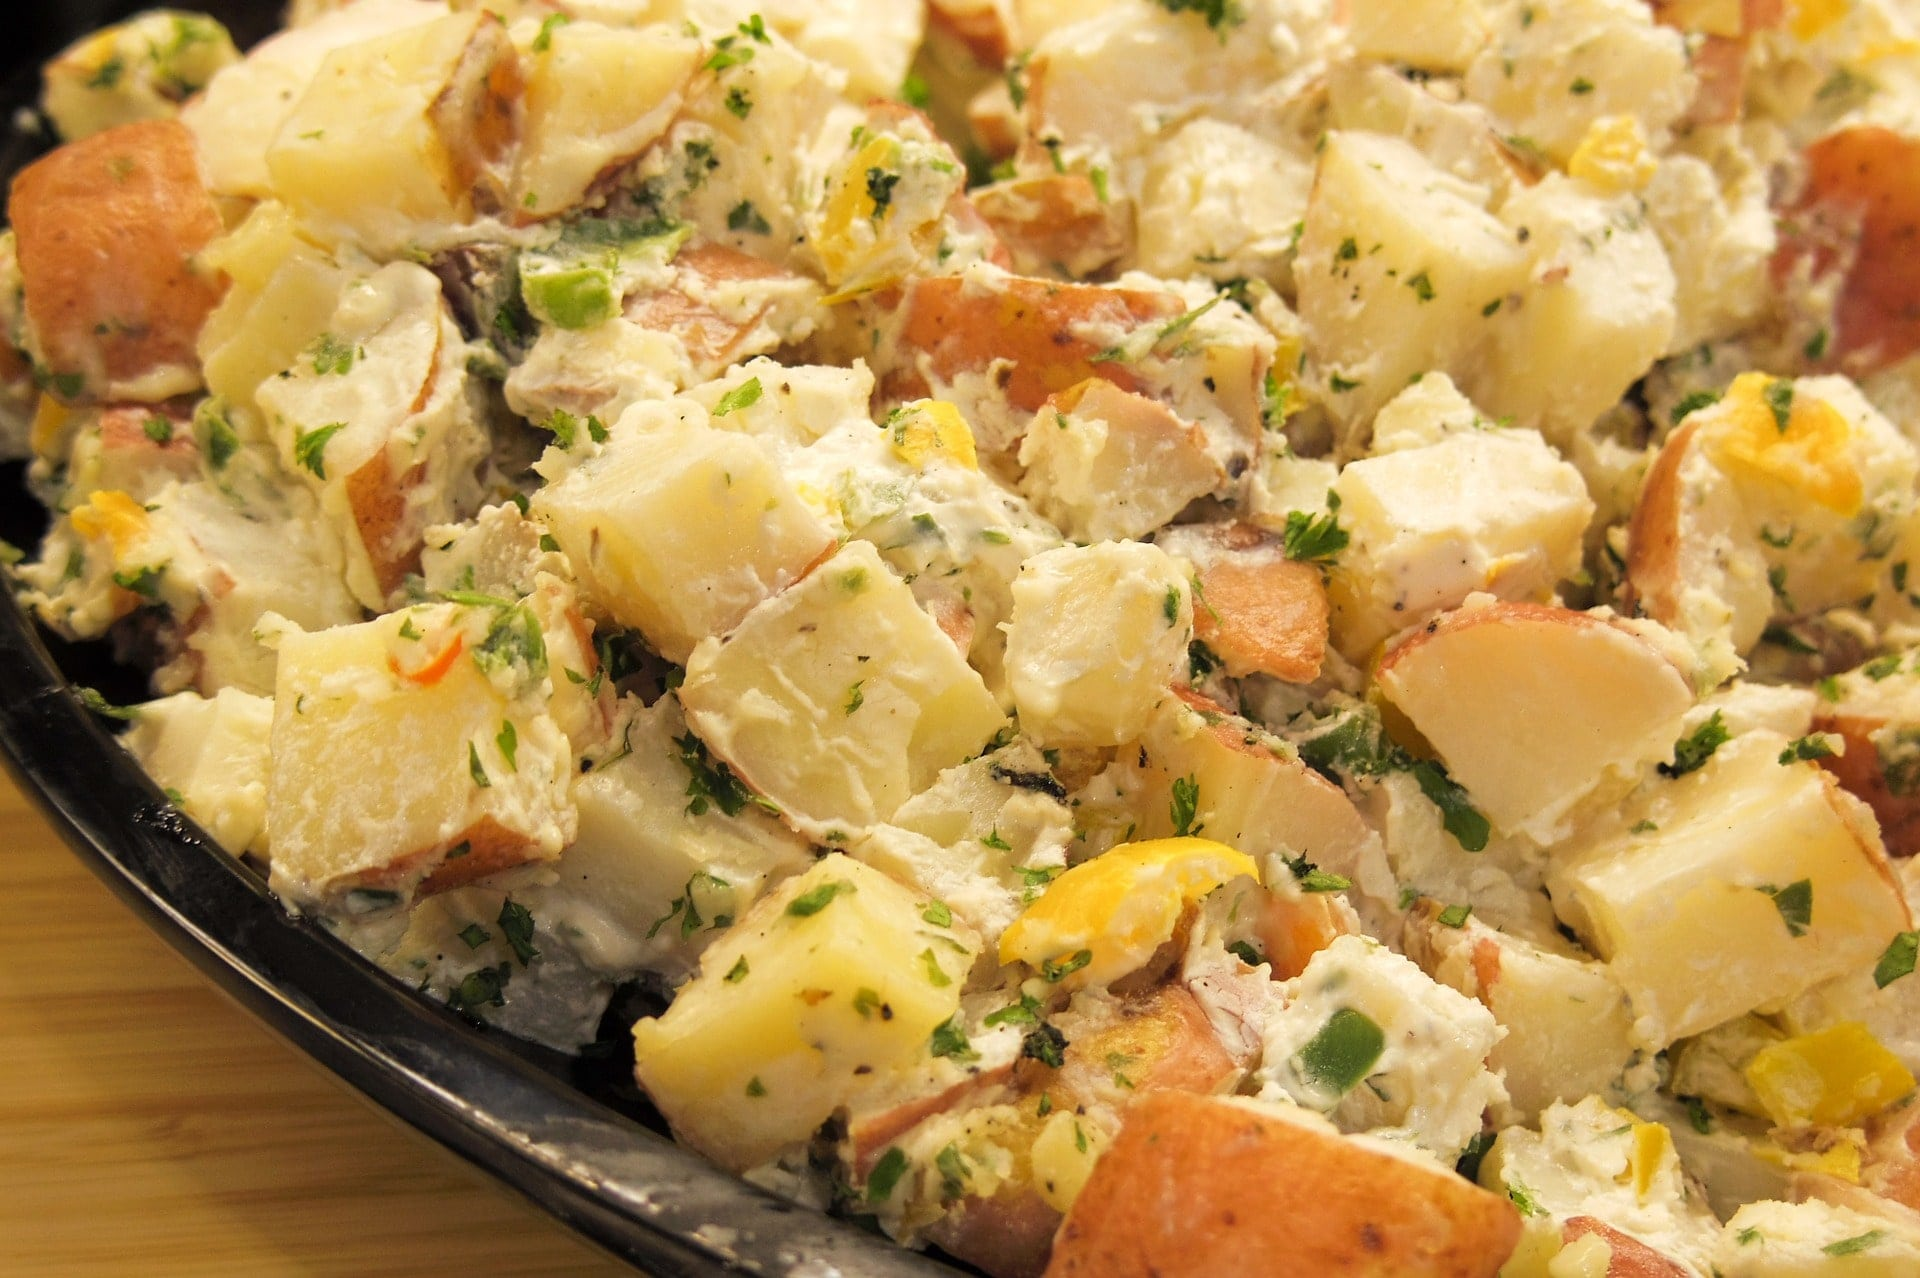 potato salad - Who doesn't love a delicious, creamy potato salad?If you're a big fan of the creamy, mayo packed potato salad then Cooking Classy's classic potato salad is the recipe for you.Barefeet in the Kitchen's Italian Potato Salad is a mayo-free zone, so for those of you begging for a lighter but extremely tasty recipe then look no further. This uses salami and zesty flavours, perfect for summer.